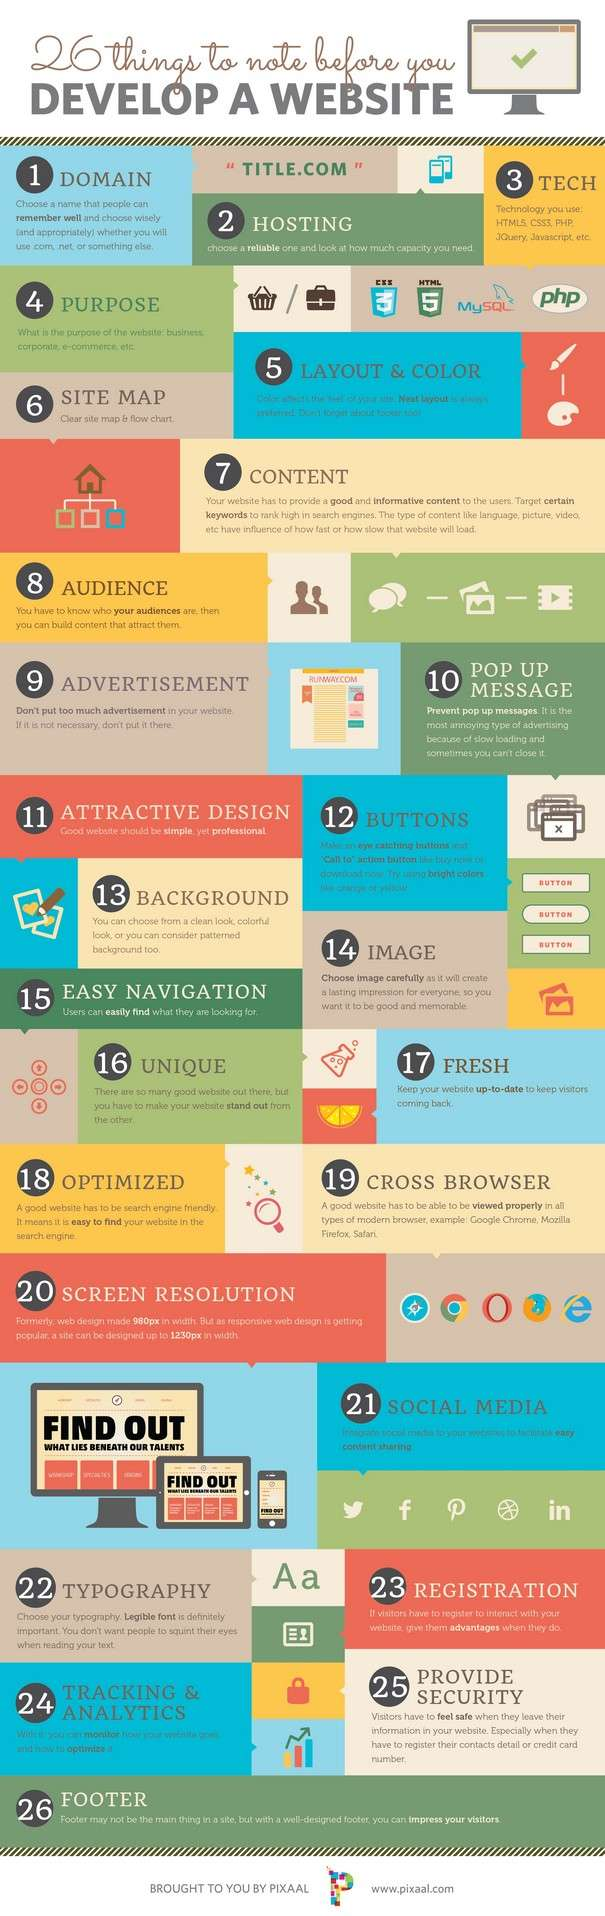 26 Things to Note Before You Develop a Website Infographic